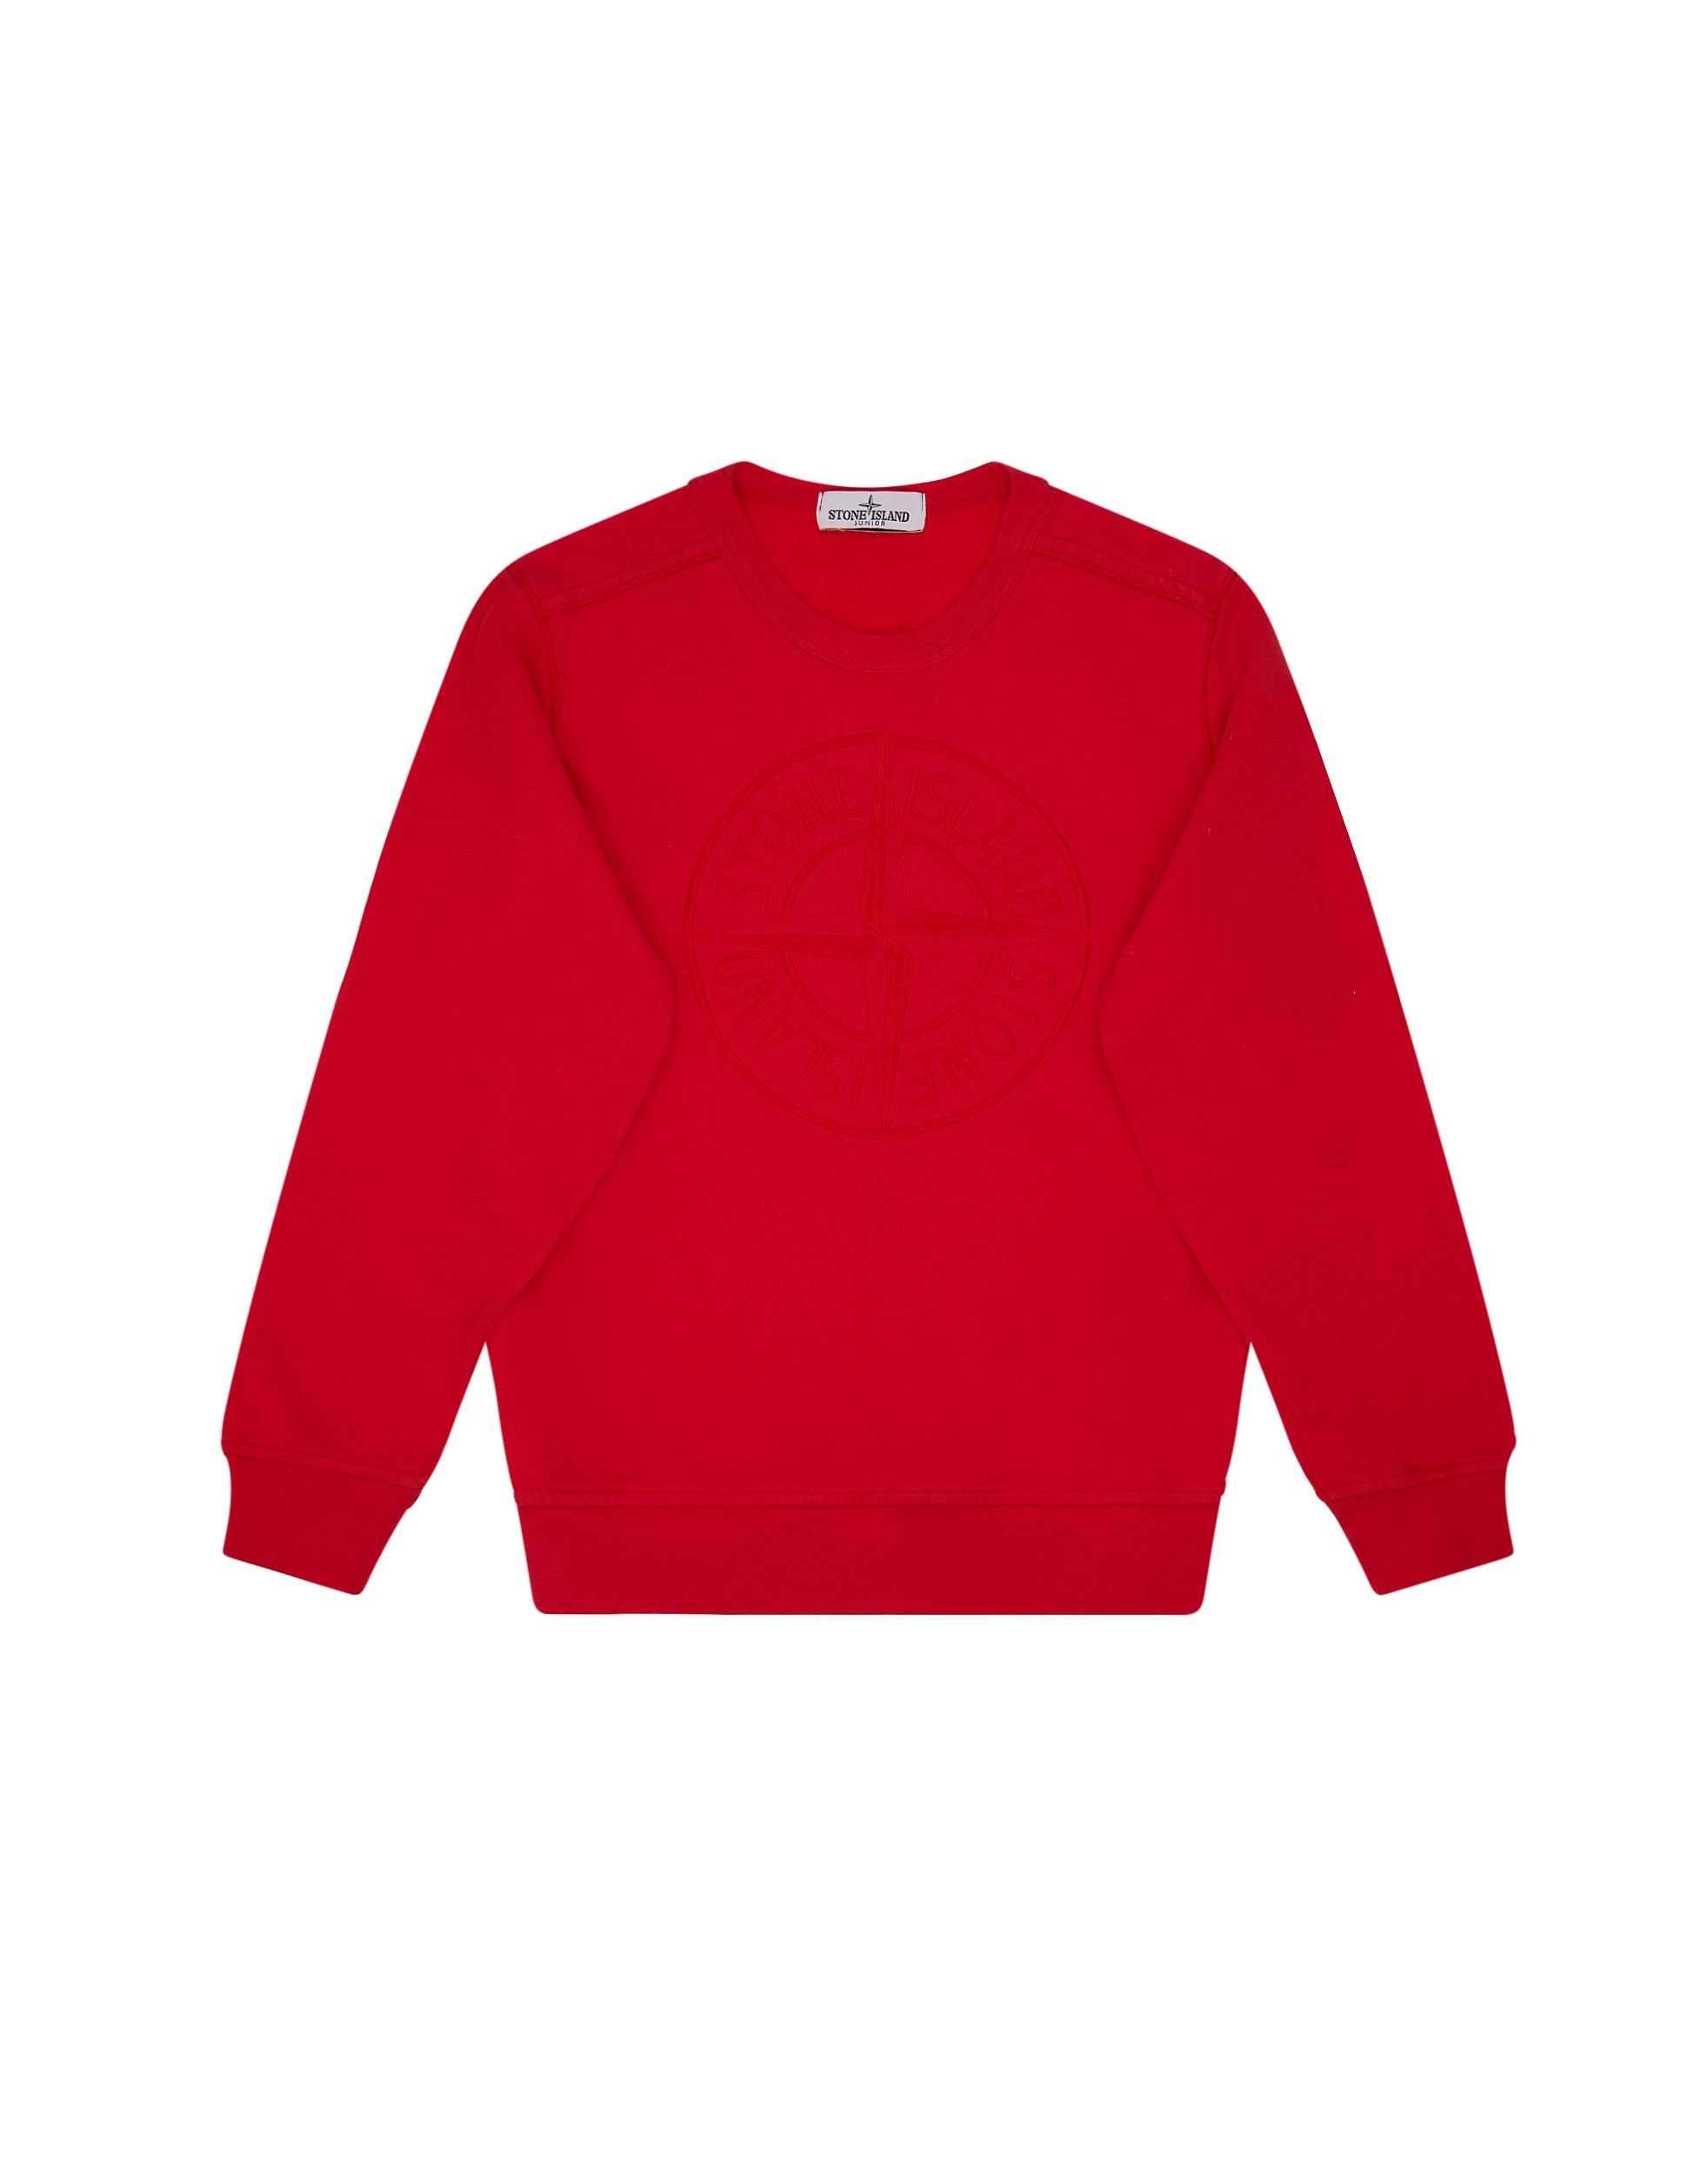 63040 Compass Crew Neck Sweatshirt in Red